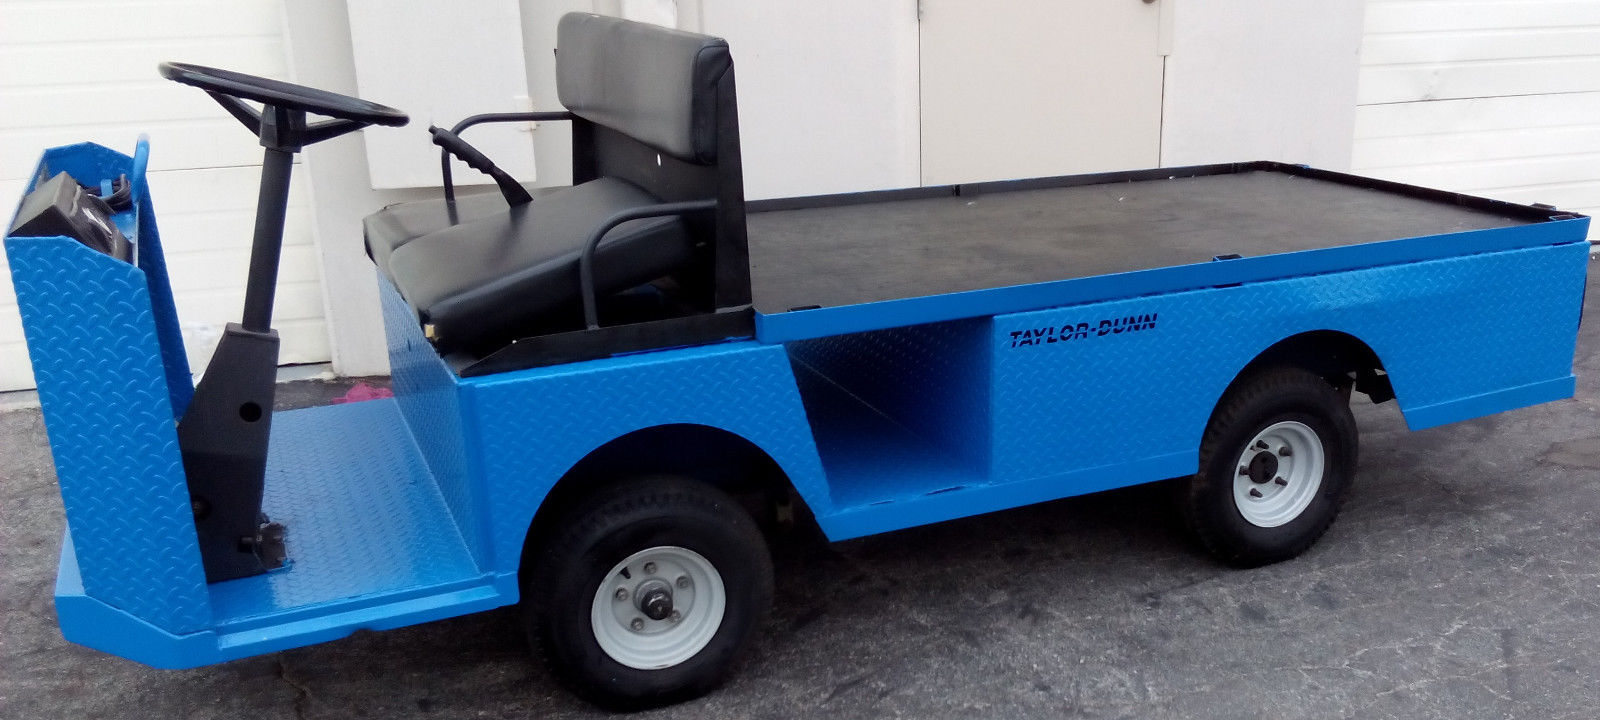 Golf Cart Rental Services